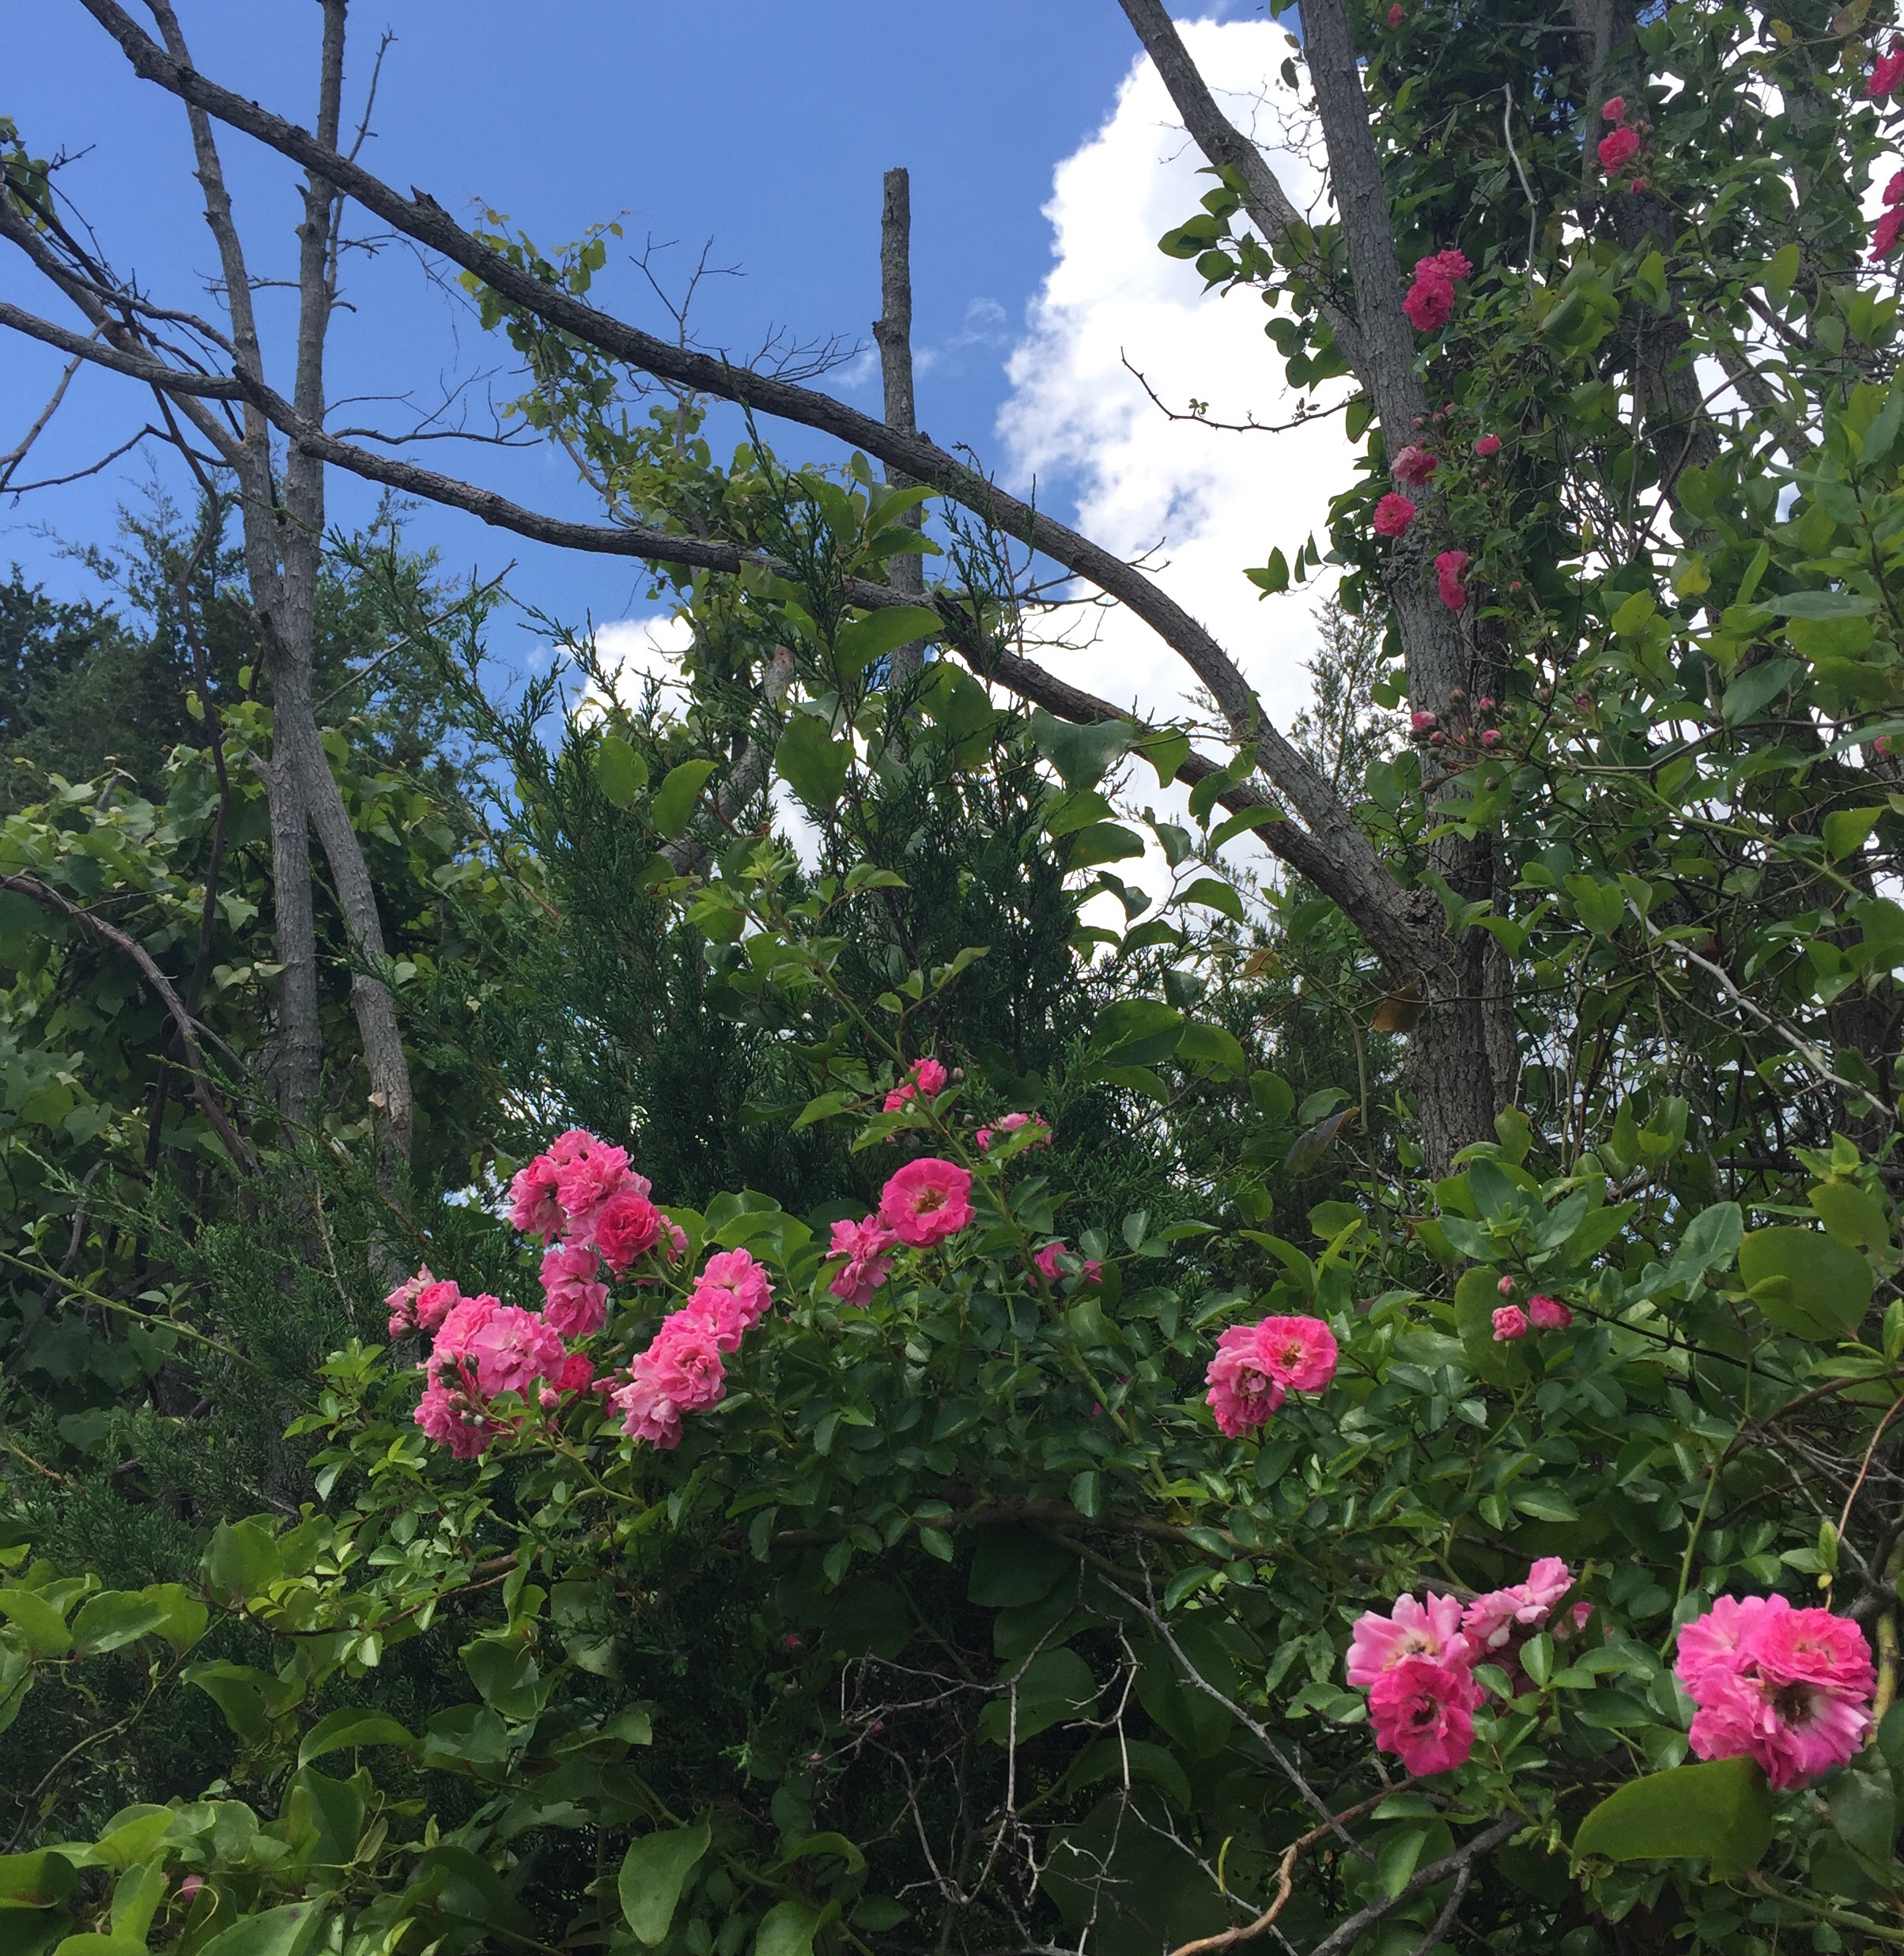 Pink wild roses grow all along the road.